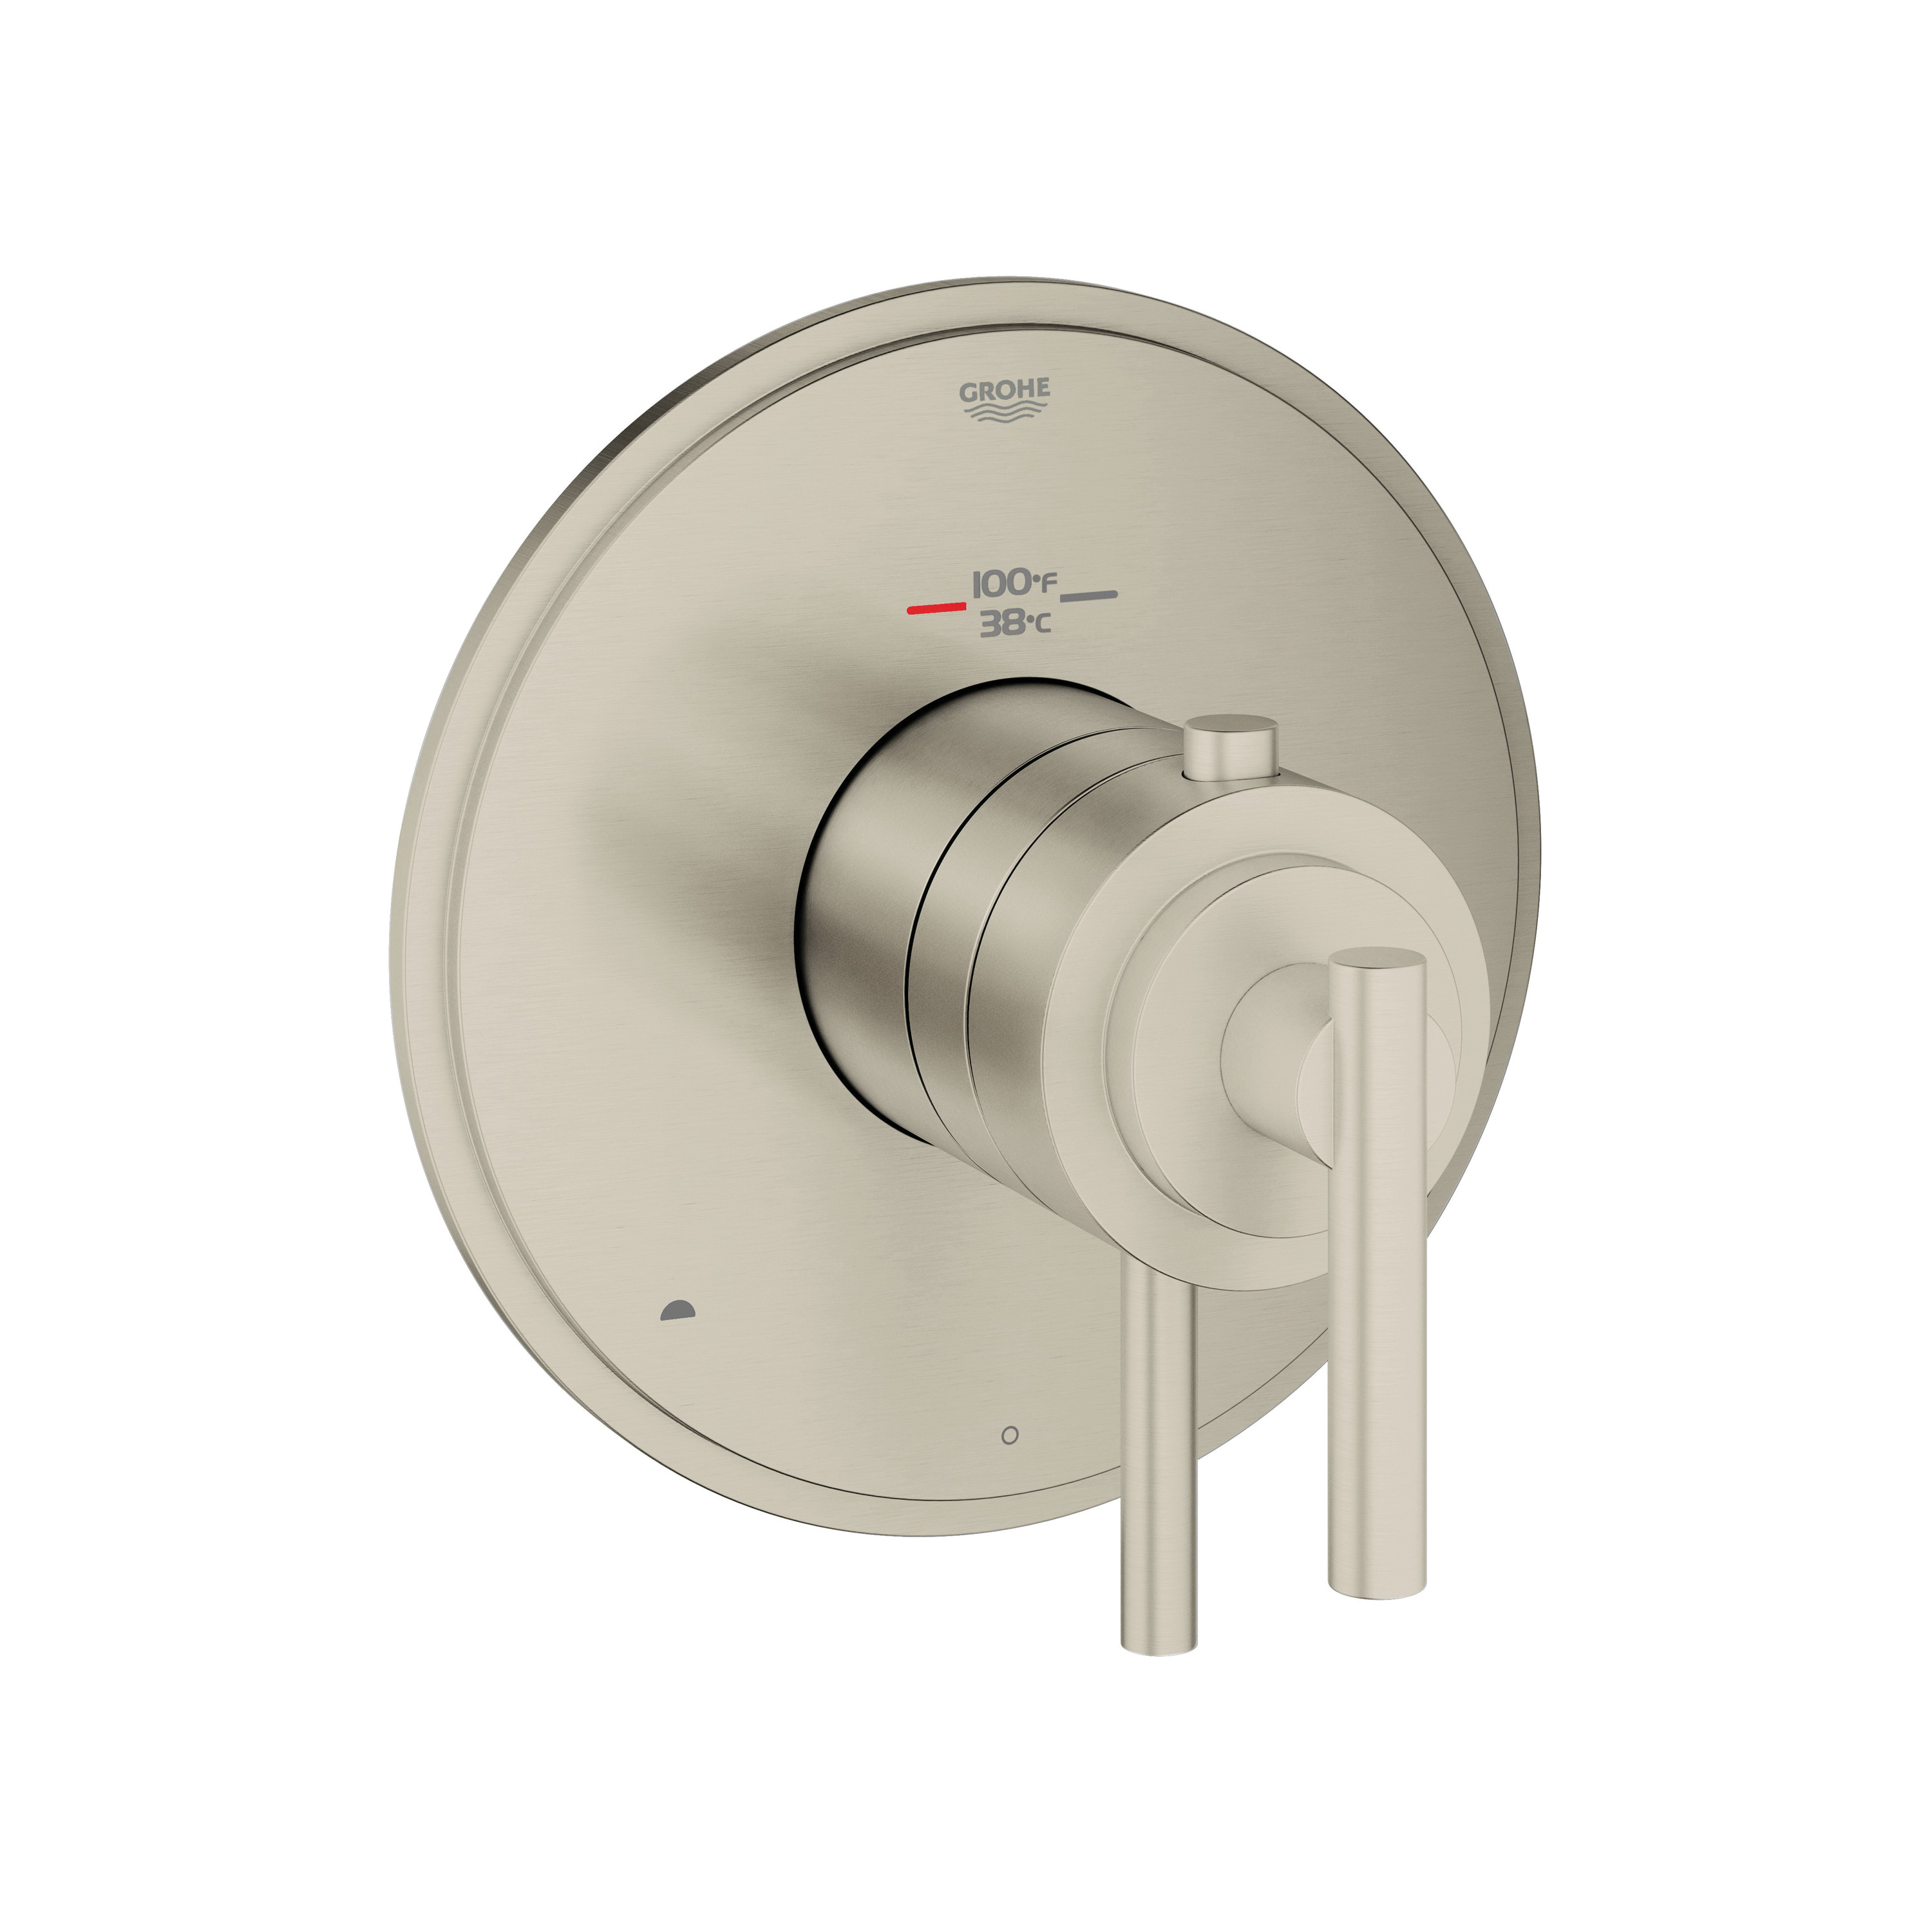 GROHE 19849EN0 Atrio® 2-Function Trim, 3.2 to 6.3 gpm Shower, Hand Shower Yes/No: No, Brushed Nickel